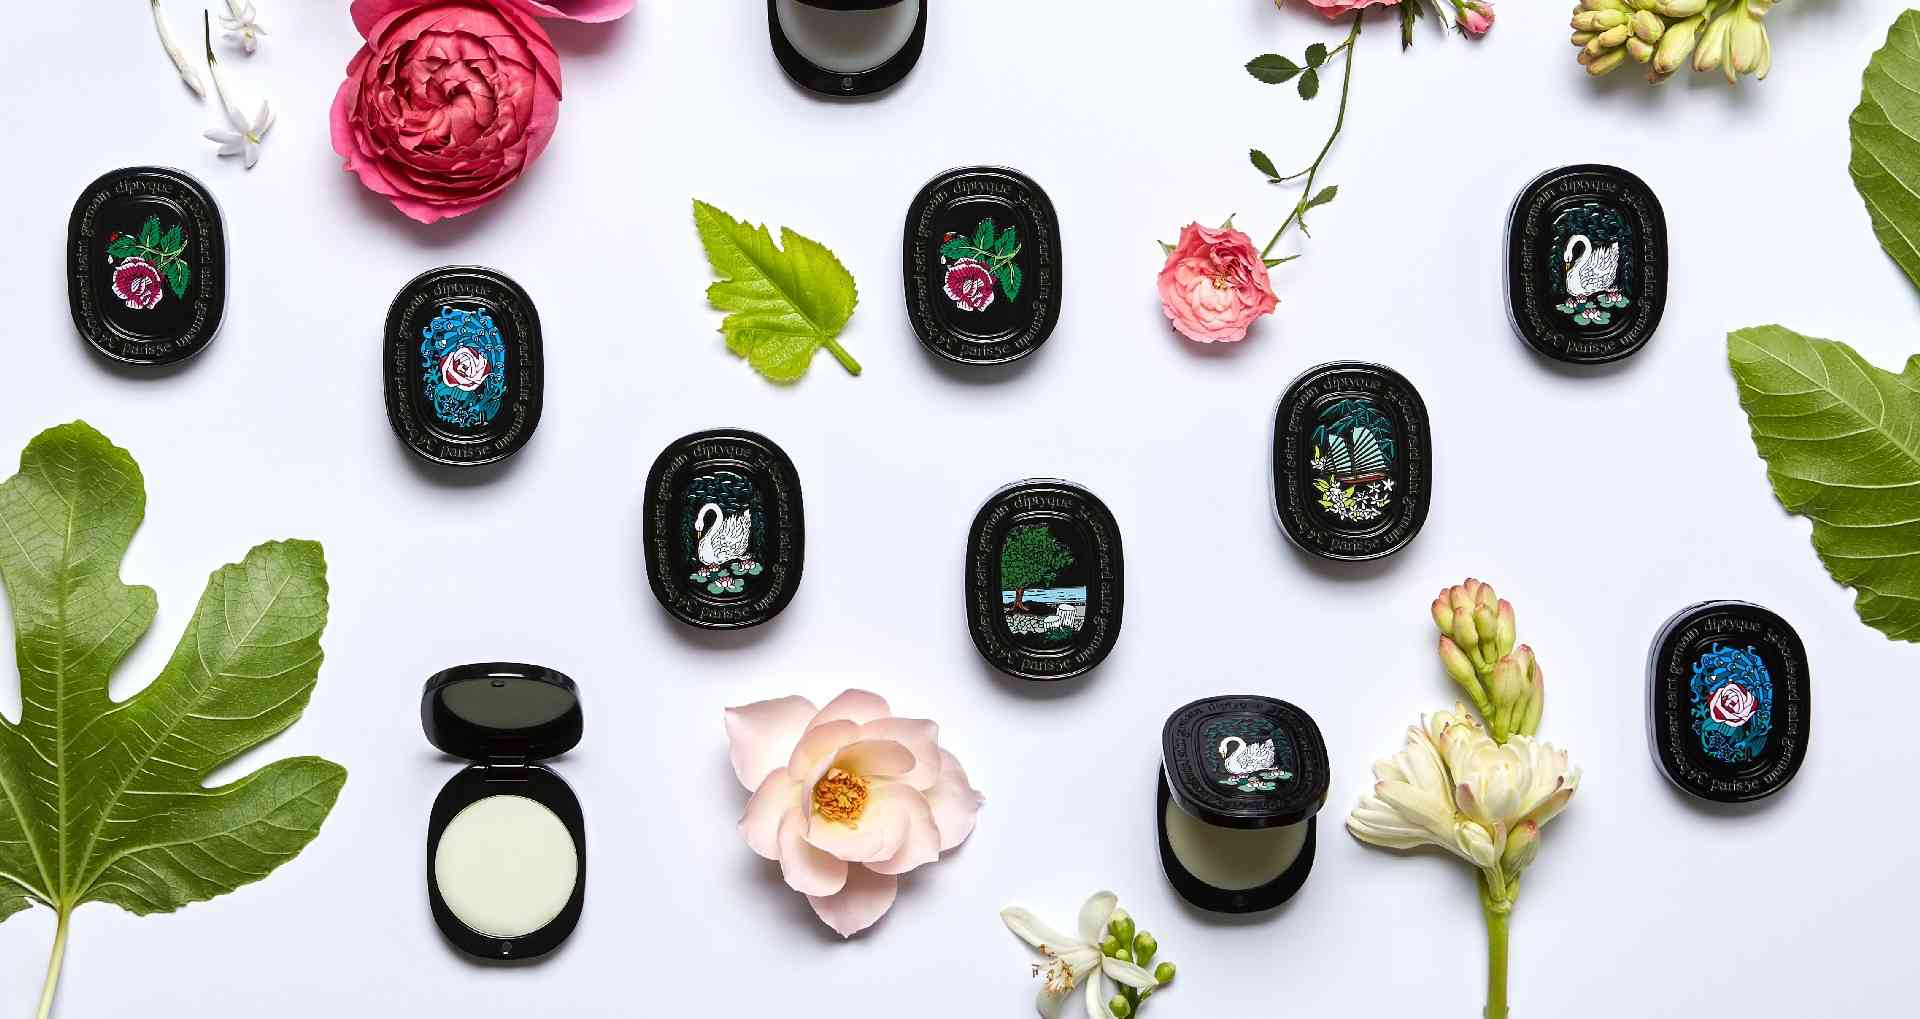 New Solid Perfume